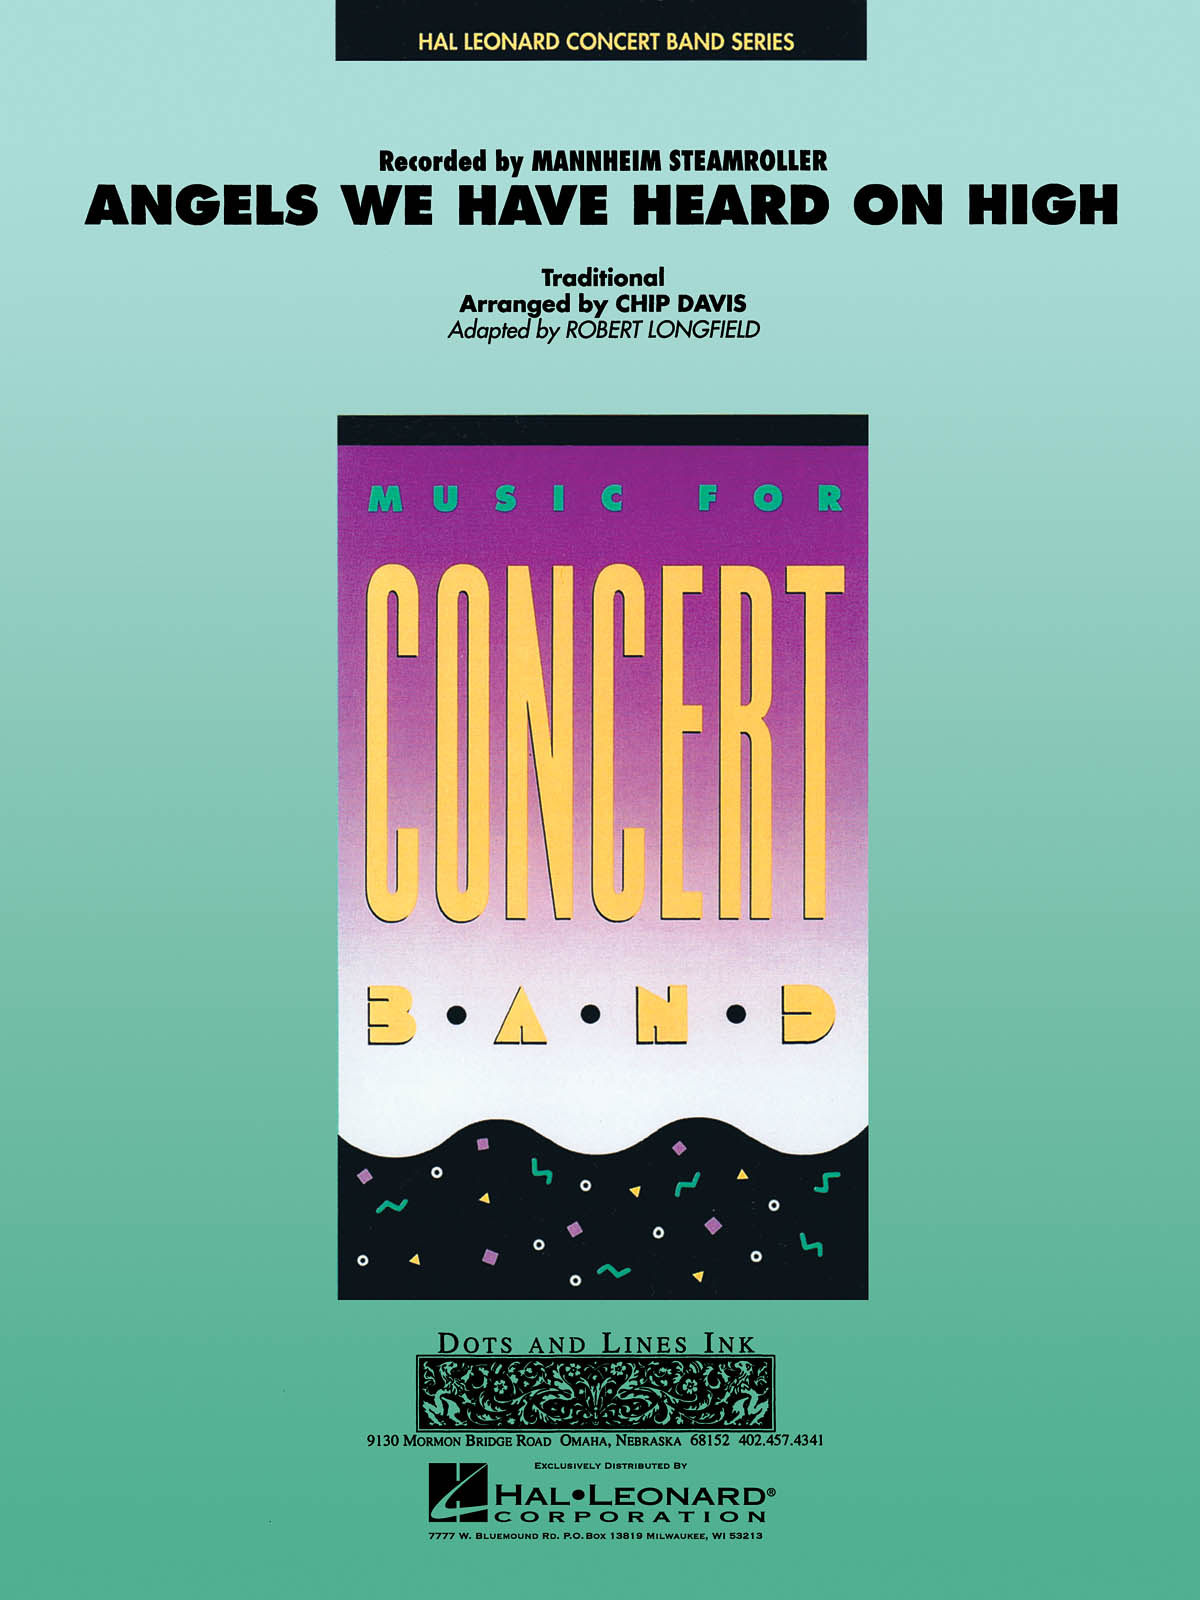 Mannheim Steamroller: Angels We Have Heard on High: Concert Band: Score & Parts